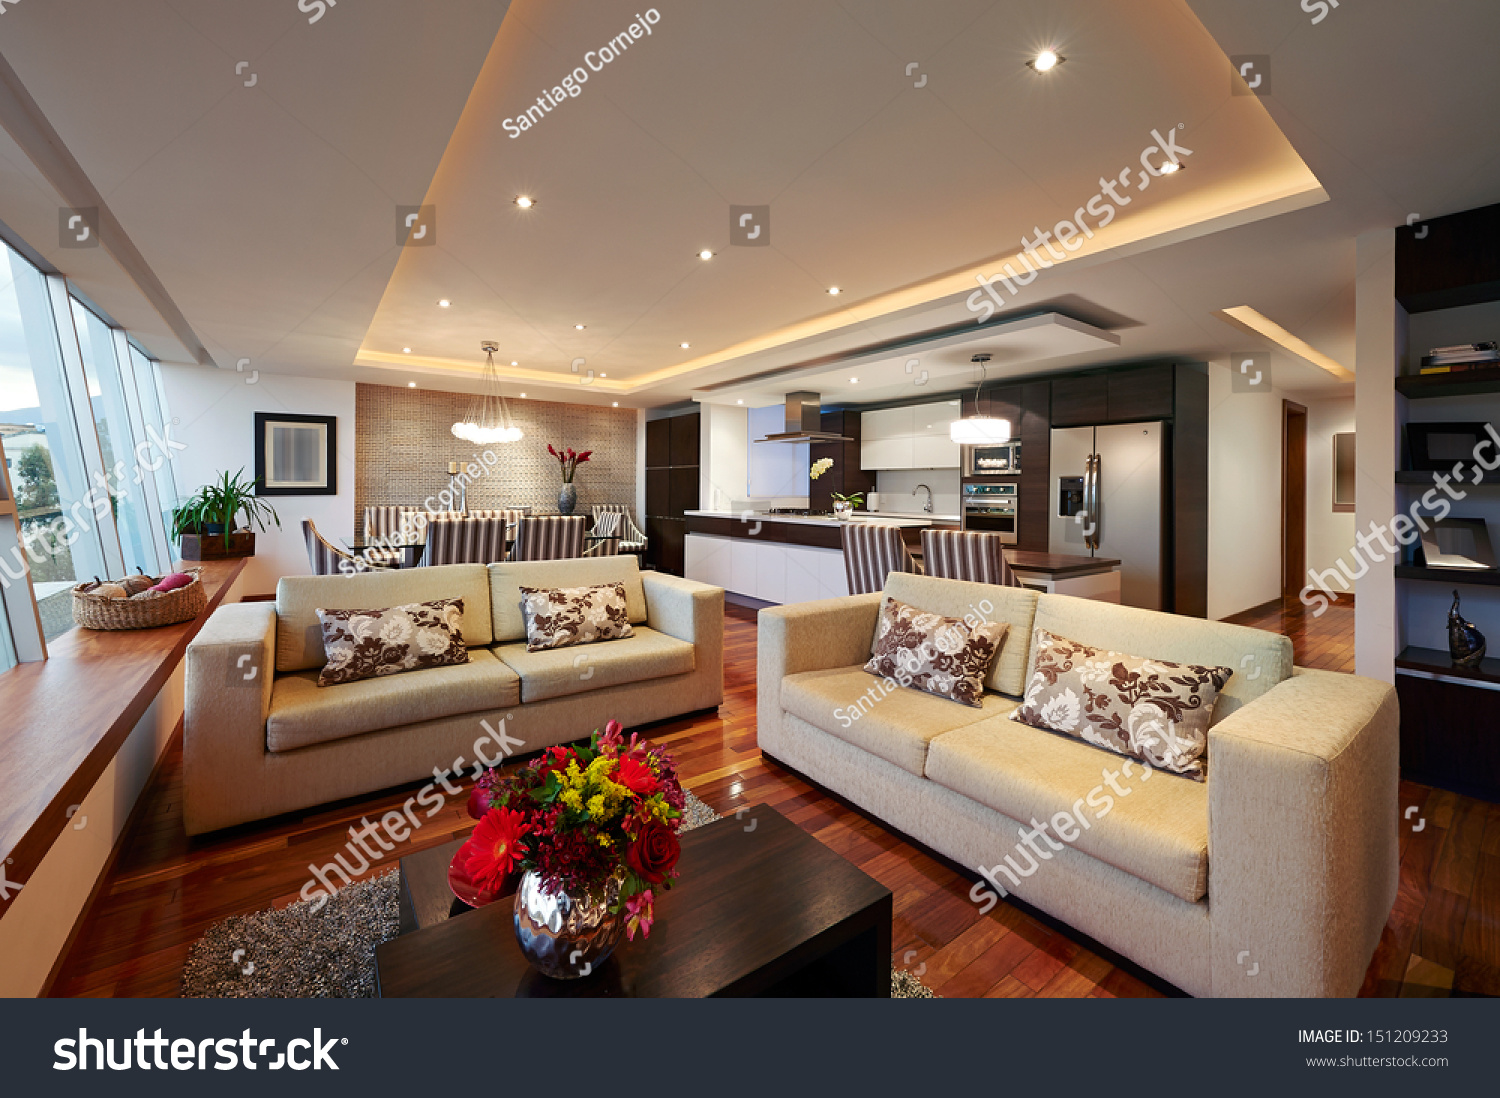 Interior Design: Big Modern Living Room Stock Photo ...